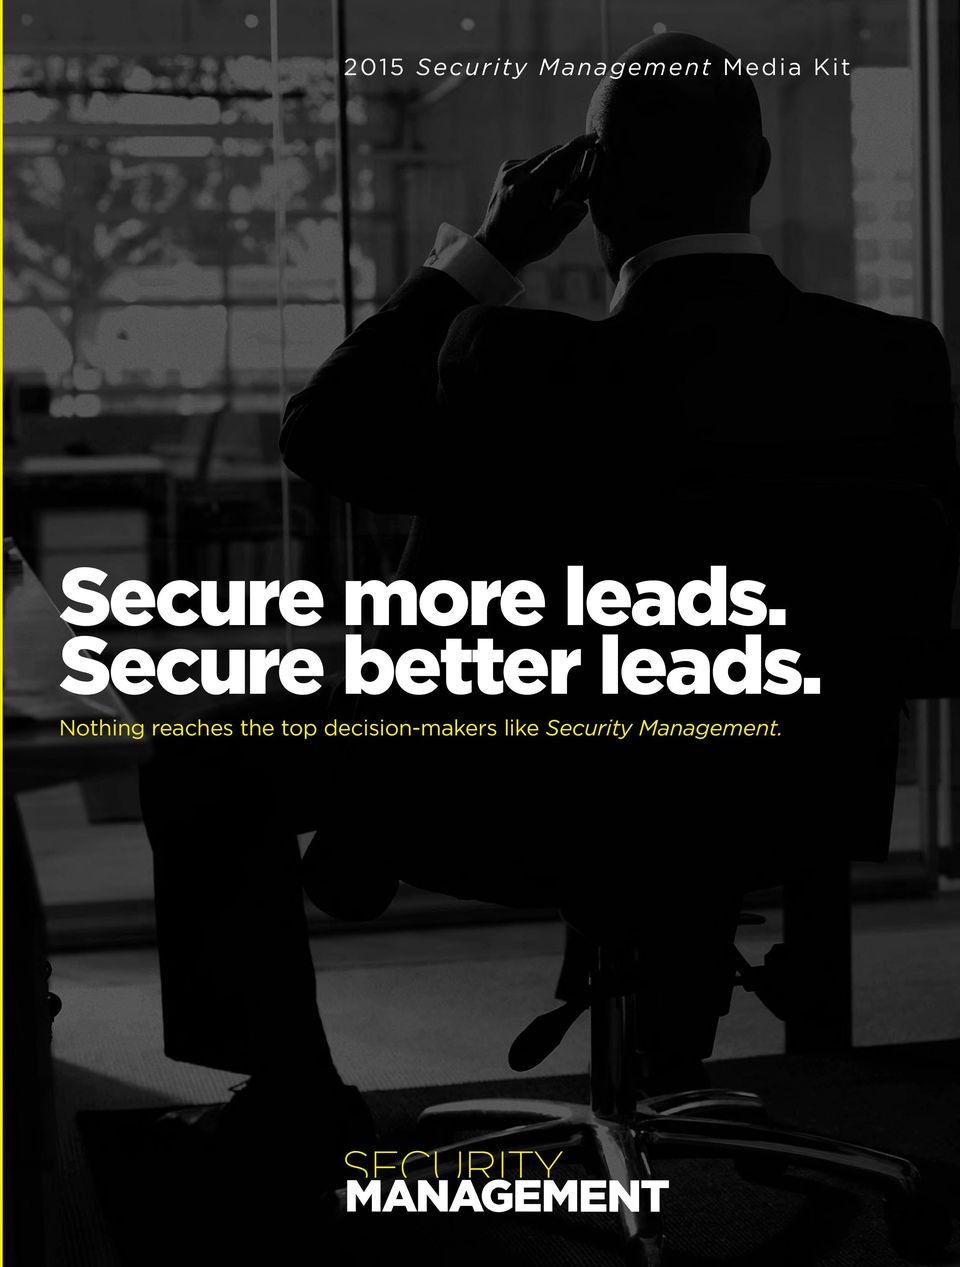 Secure better leads.